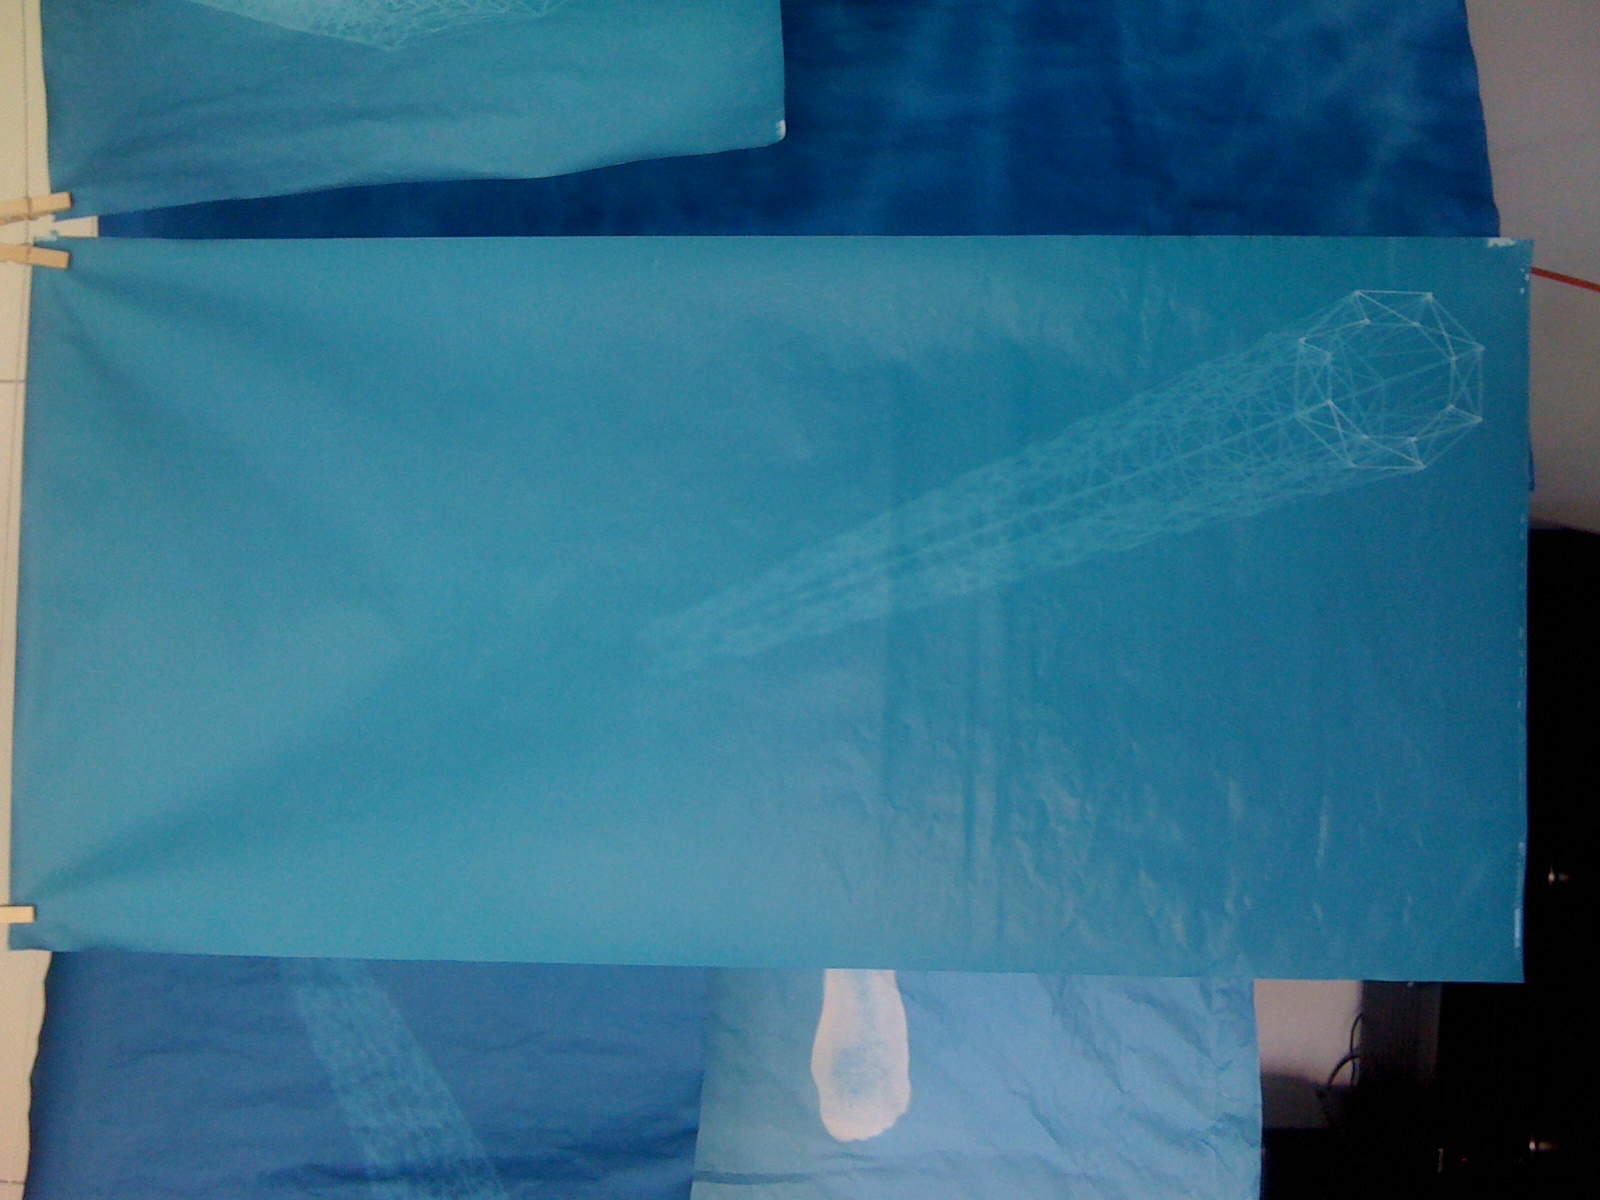 Cyanotypes drying after developing them. As they dry, they darken and the images reveal a stronger contrast in tones.